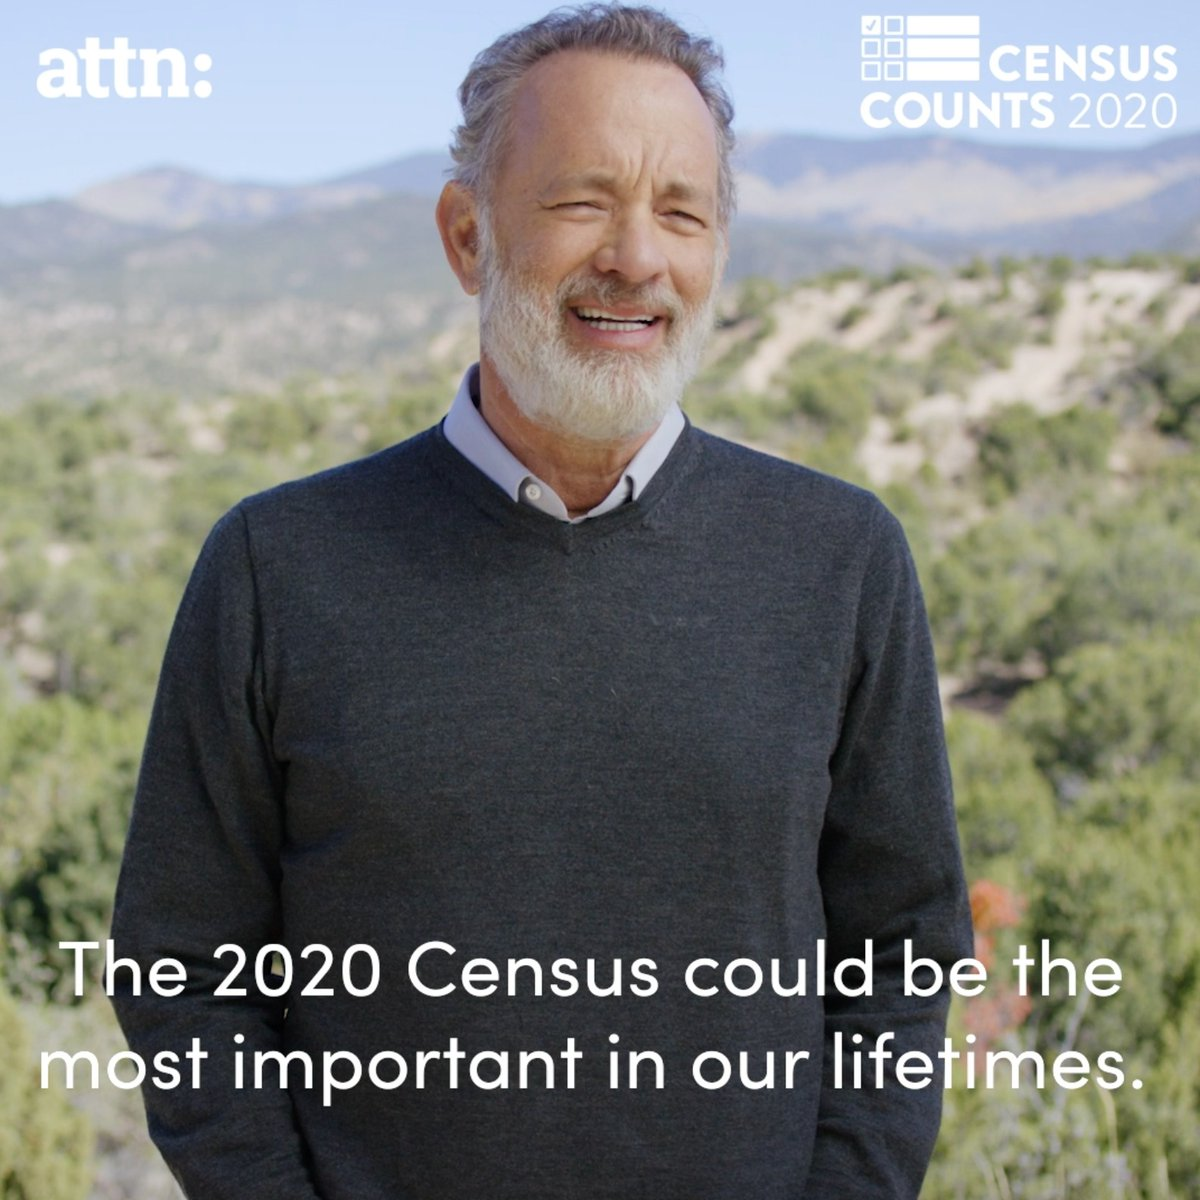 Thanks to @tomhanks, @JanelleMonae, @lizakoshy, @selenagomez, @FaithHill and @mPinoe for coming together with @CensusCounts, @attn and @WhenWeAllVote to help spread the word about the importance of the #2020Census. https://t.co/RZXt3Fiyp6